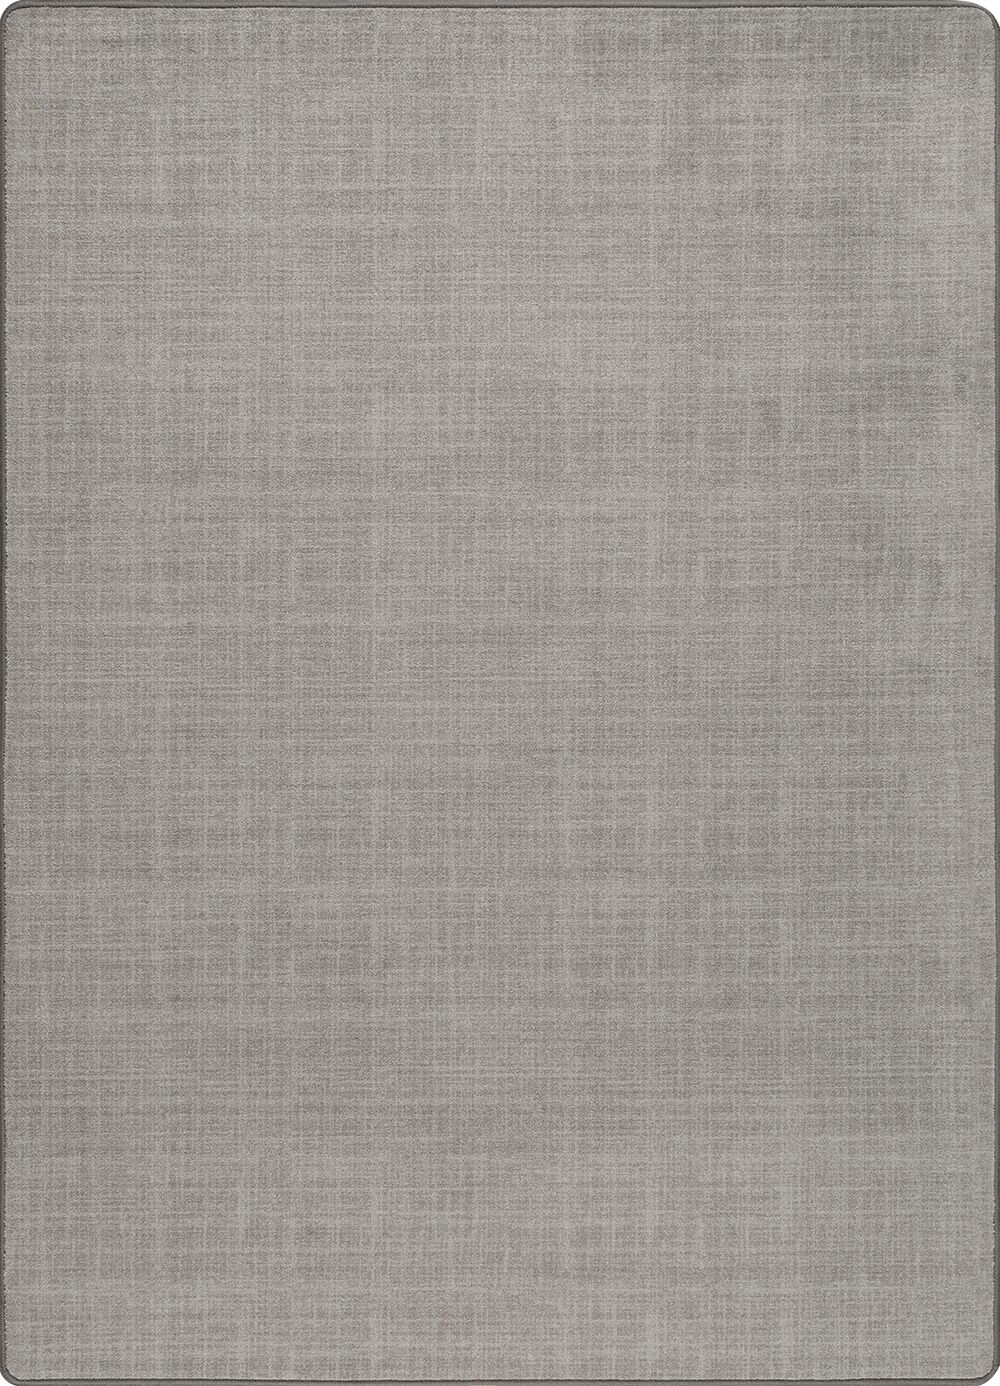 Risborough Urban Gray Area Rug Rug Size: Rectangle 7'8